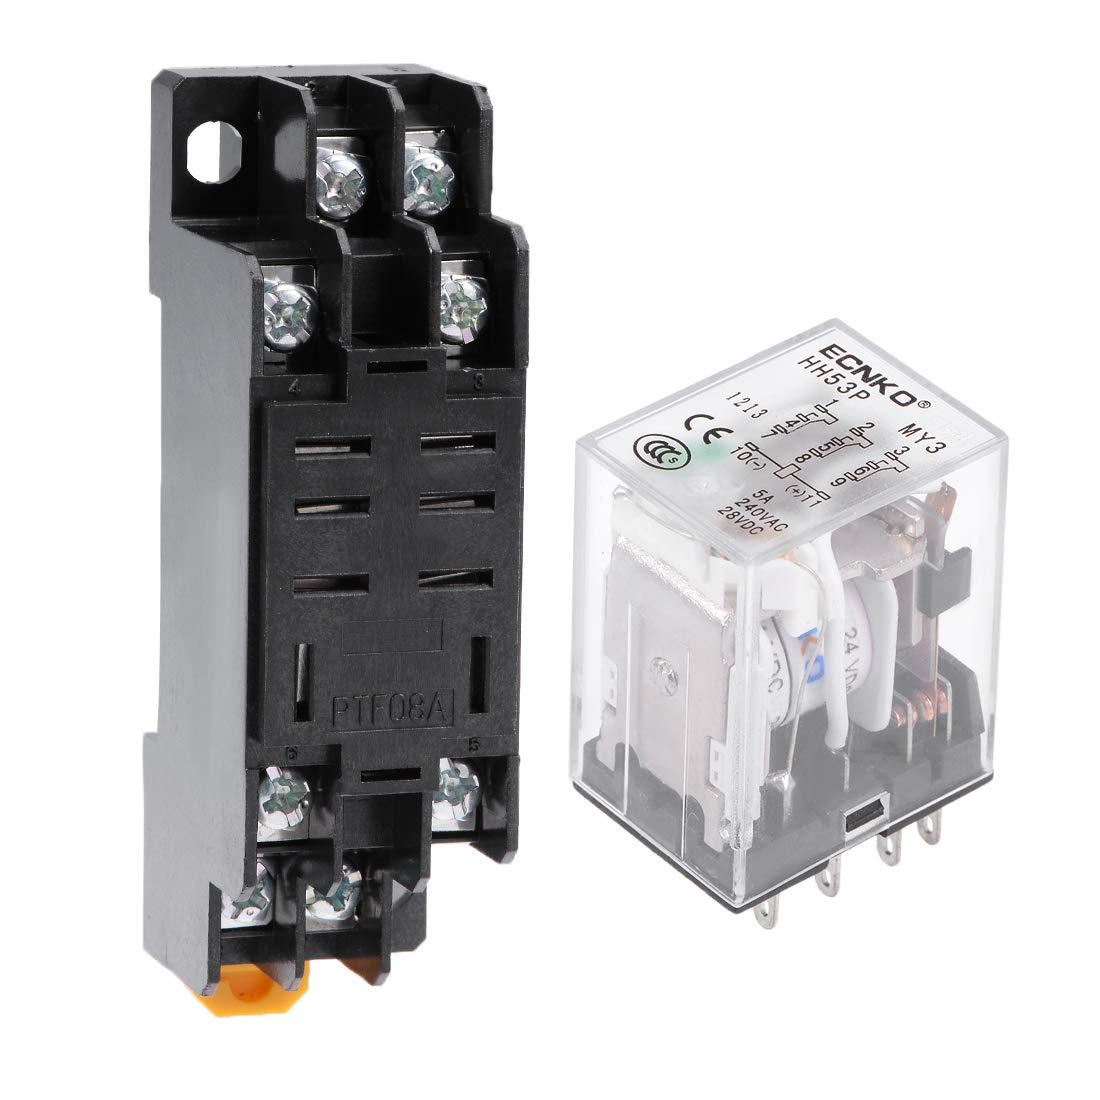 uxcell HH53P DC12V Coil 11 Pin 3PDT Power Relay 5A 240VAC 28VDC